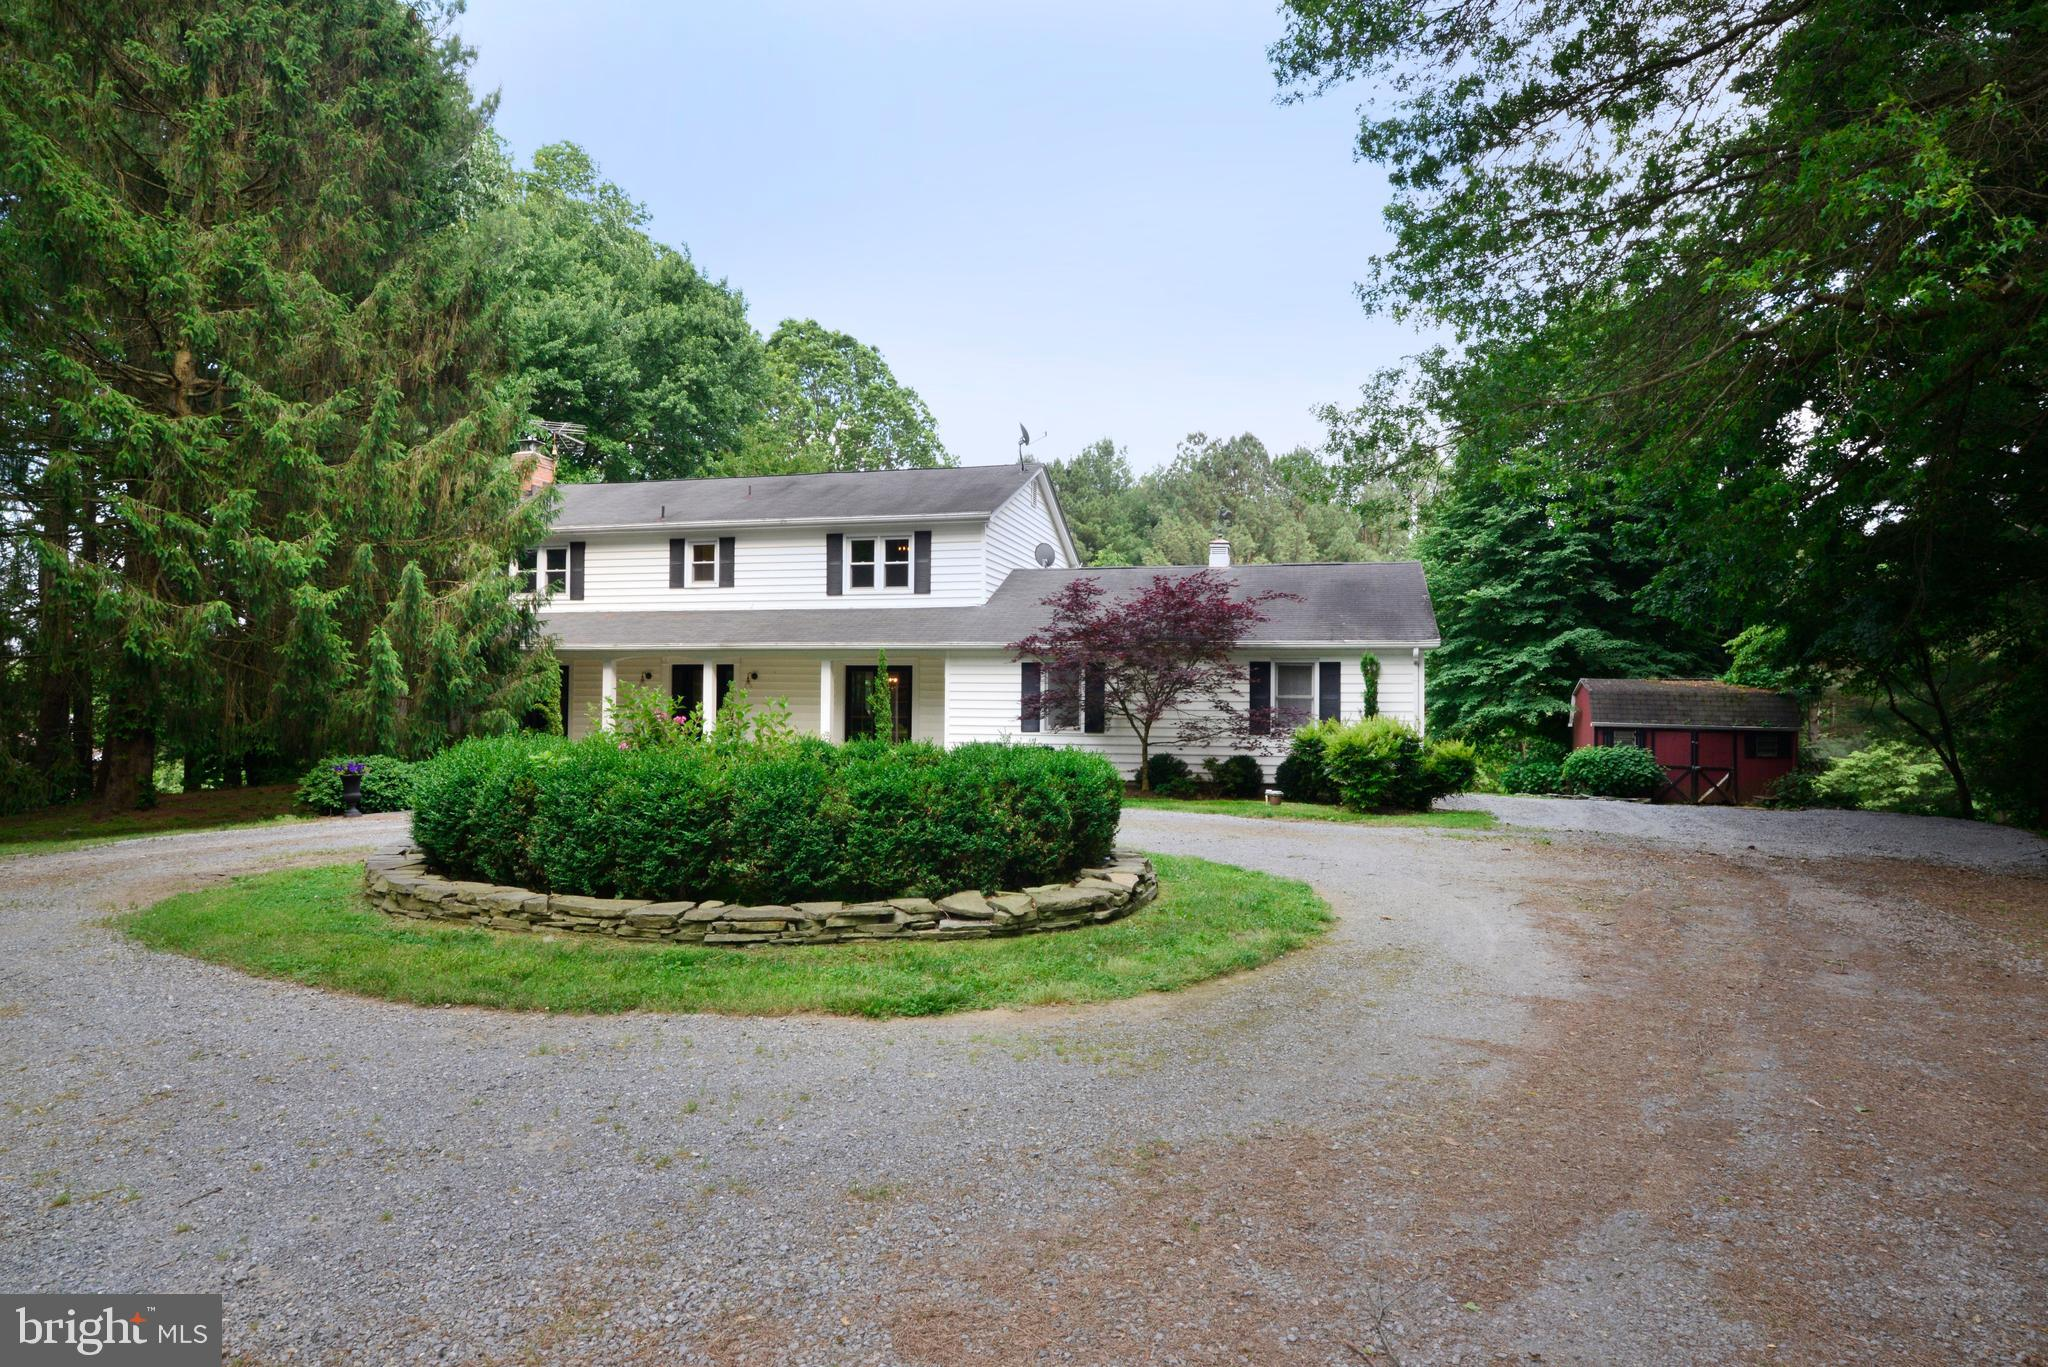 Will be on the market mid-day on Friday, June 5th! Photos to be uploaded Thursday evening (6/4).Acce